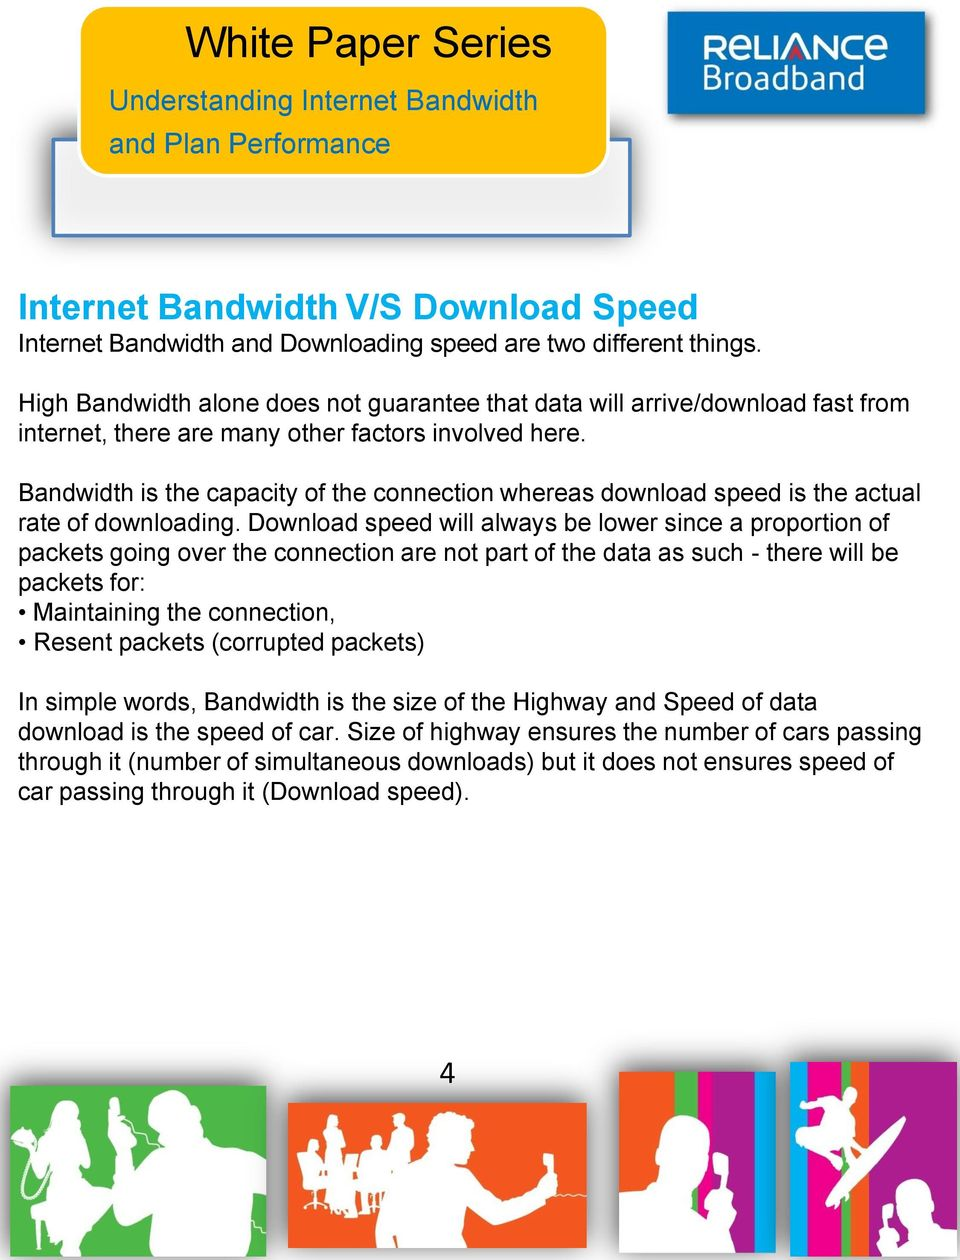 Bandwidth is the capacity of the connection whereas download speed is the actual rate of downloading.